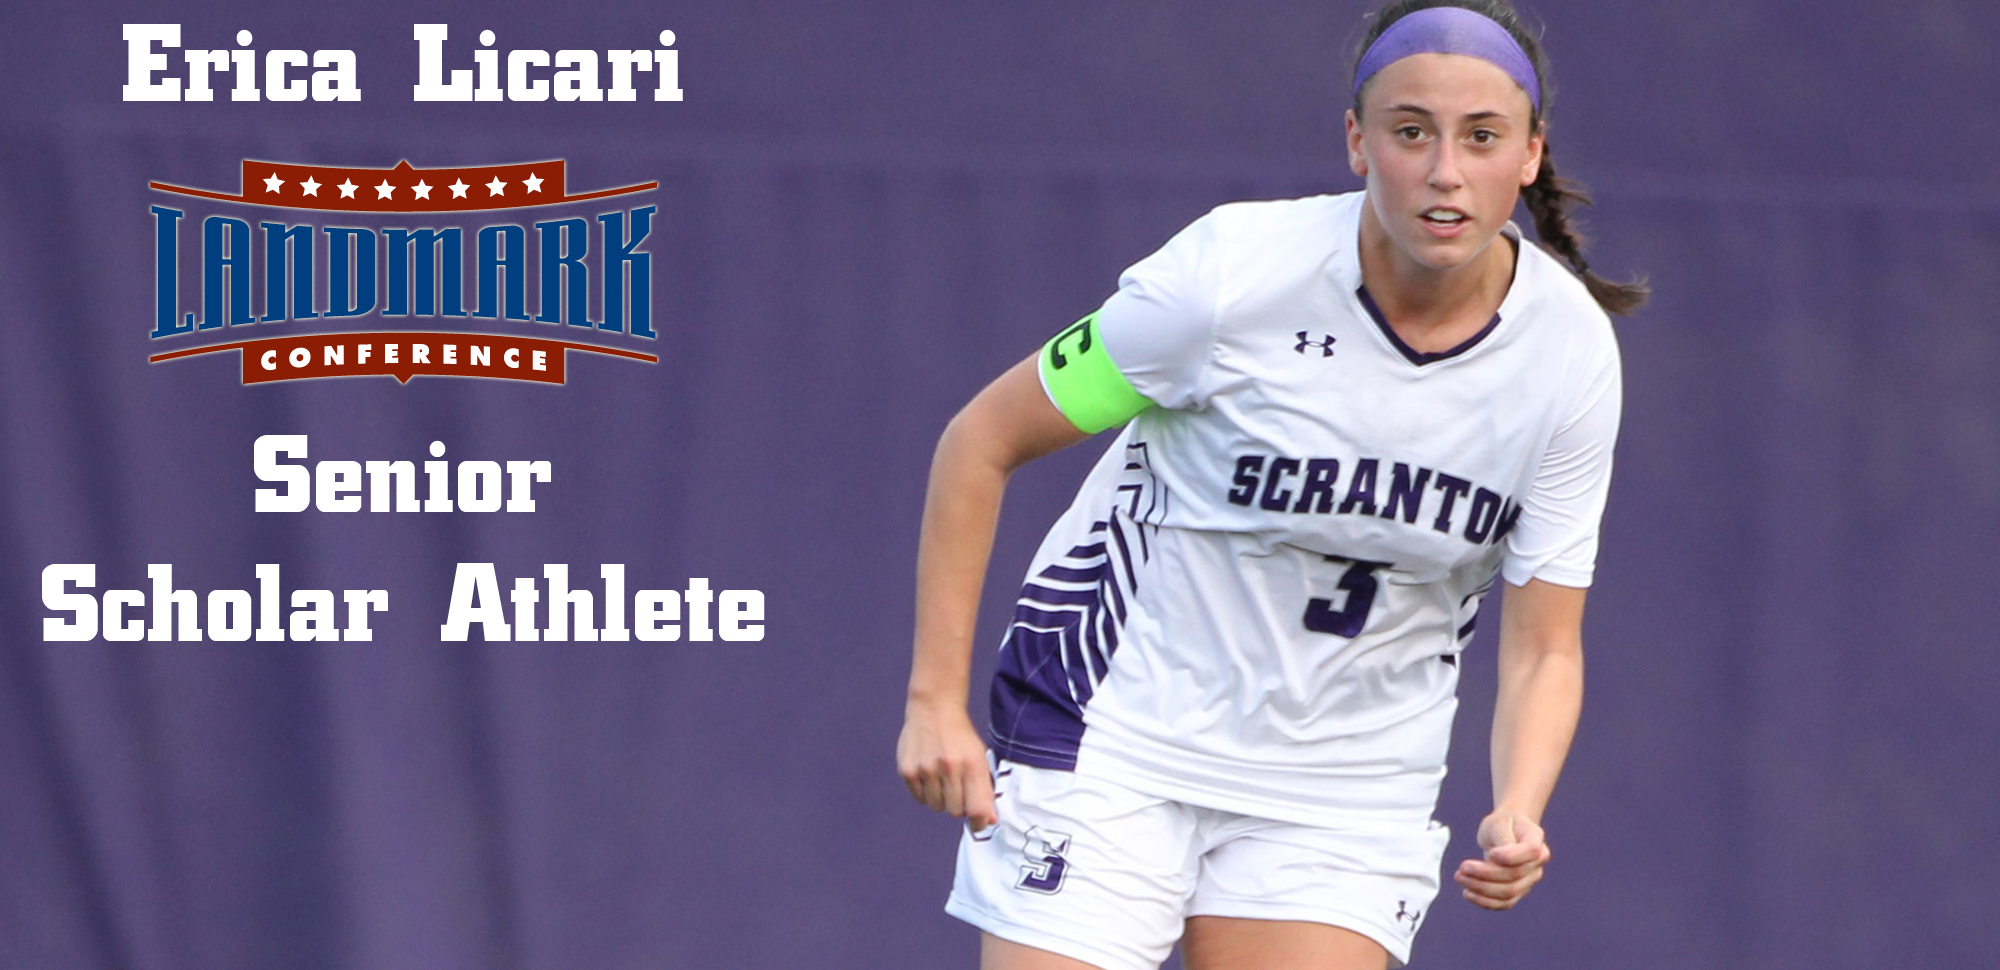 Licari Named Landmark Conference Senior Scholar Athlete for Women's Soccer